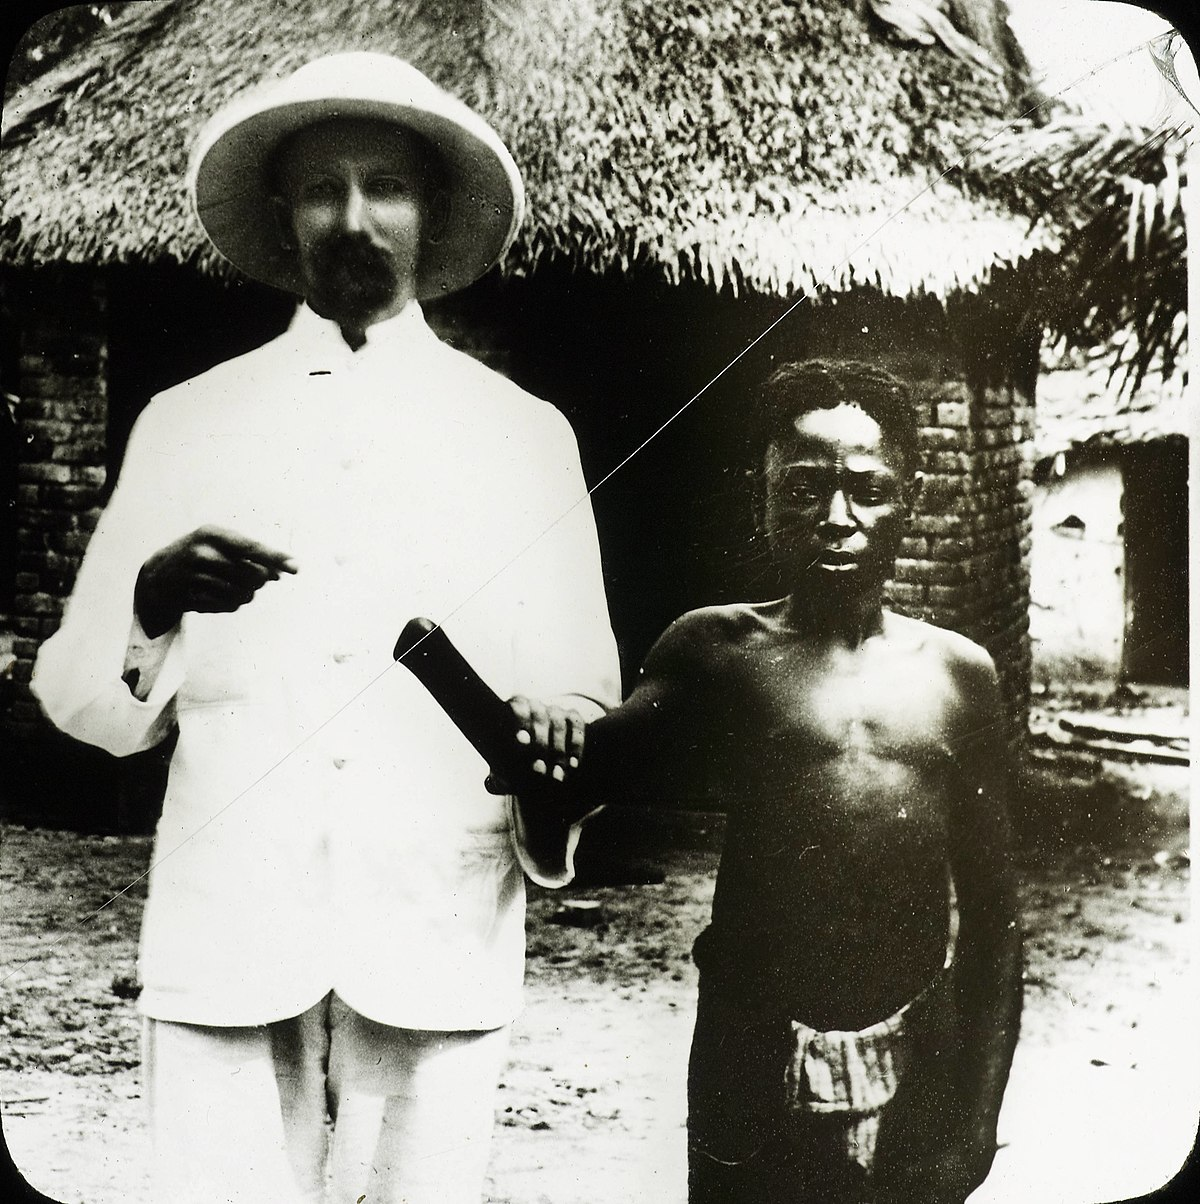 Victim of Congo atrocities, Congo, ca. 1890-1910 (IMP-CSCNWW33-OS10-19).jpg